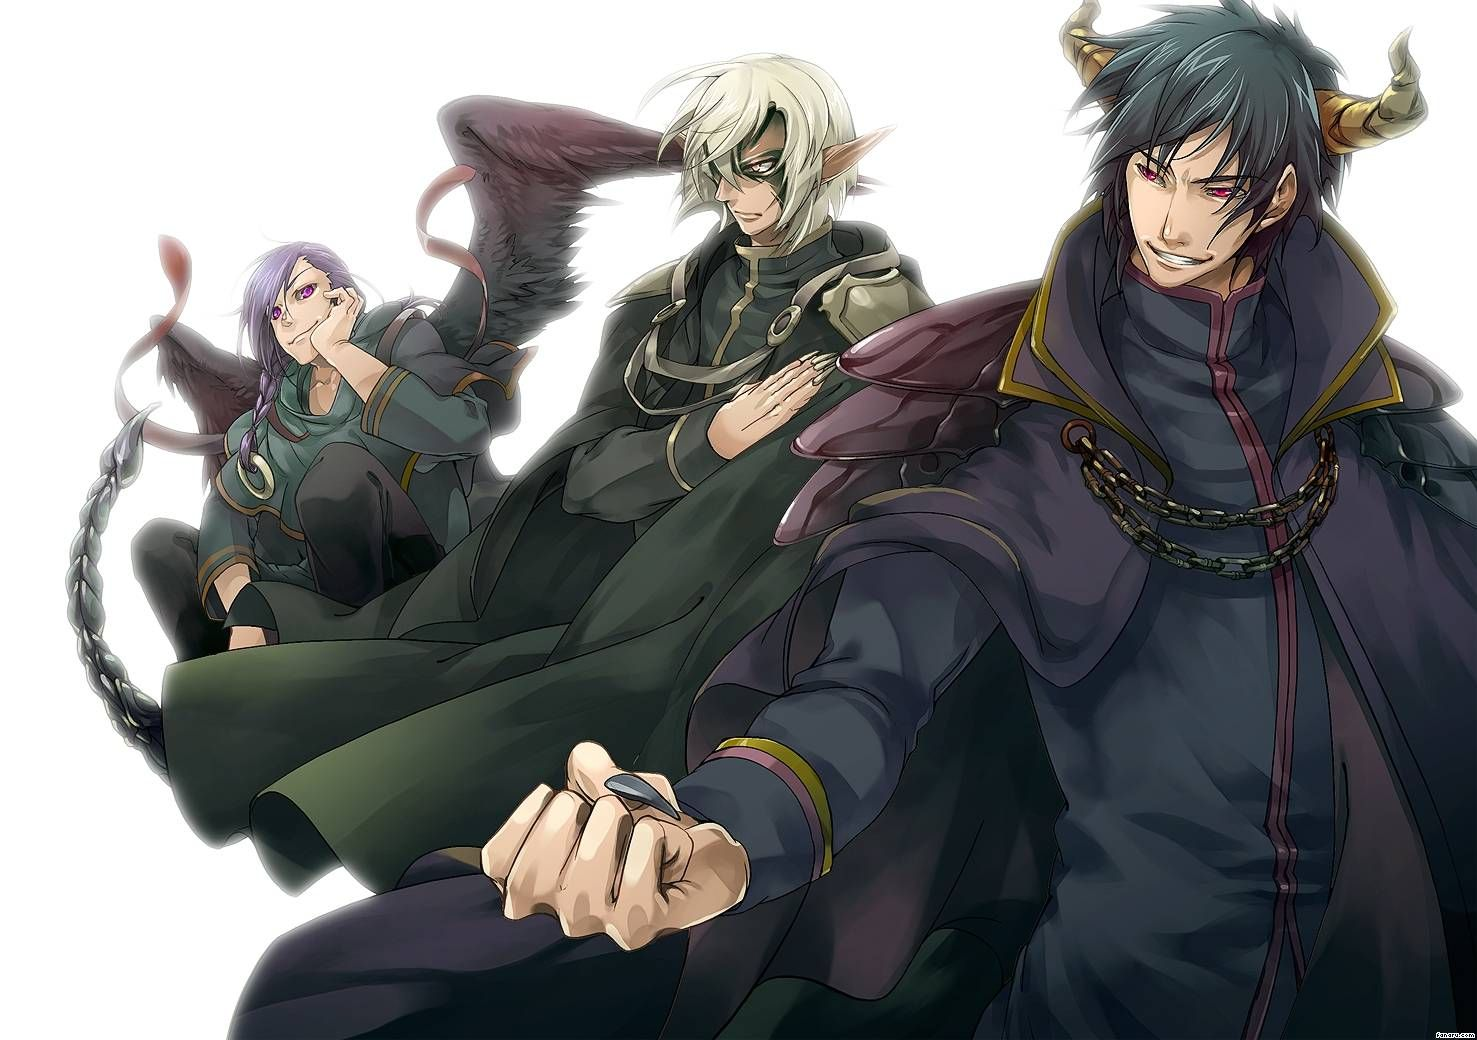 82300-the-devil-is-a-part-timer-male-demons.jpg (1477×1040 ...